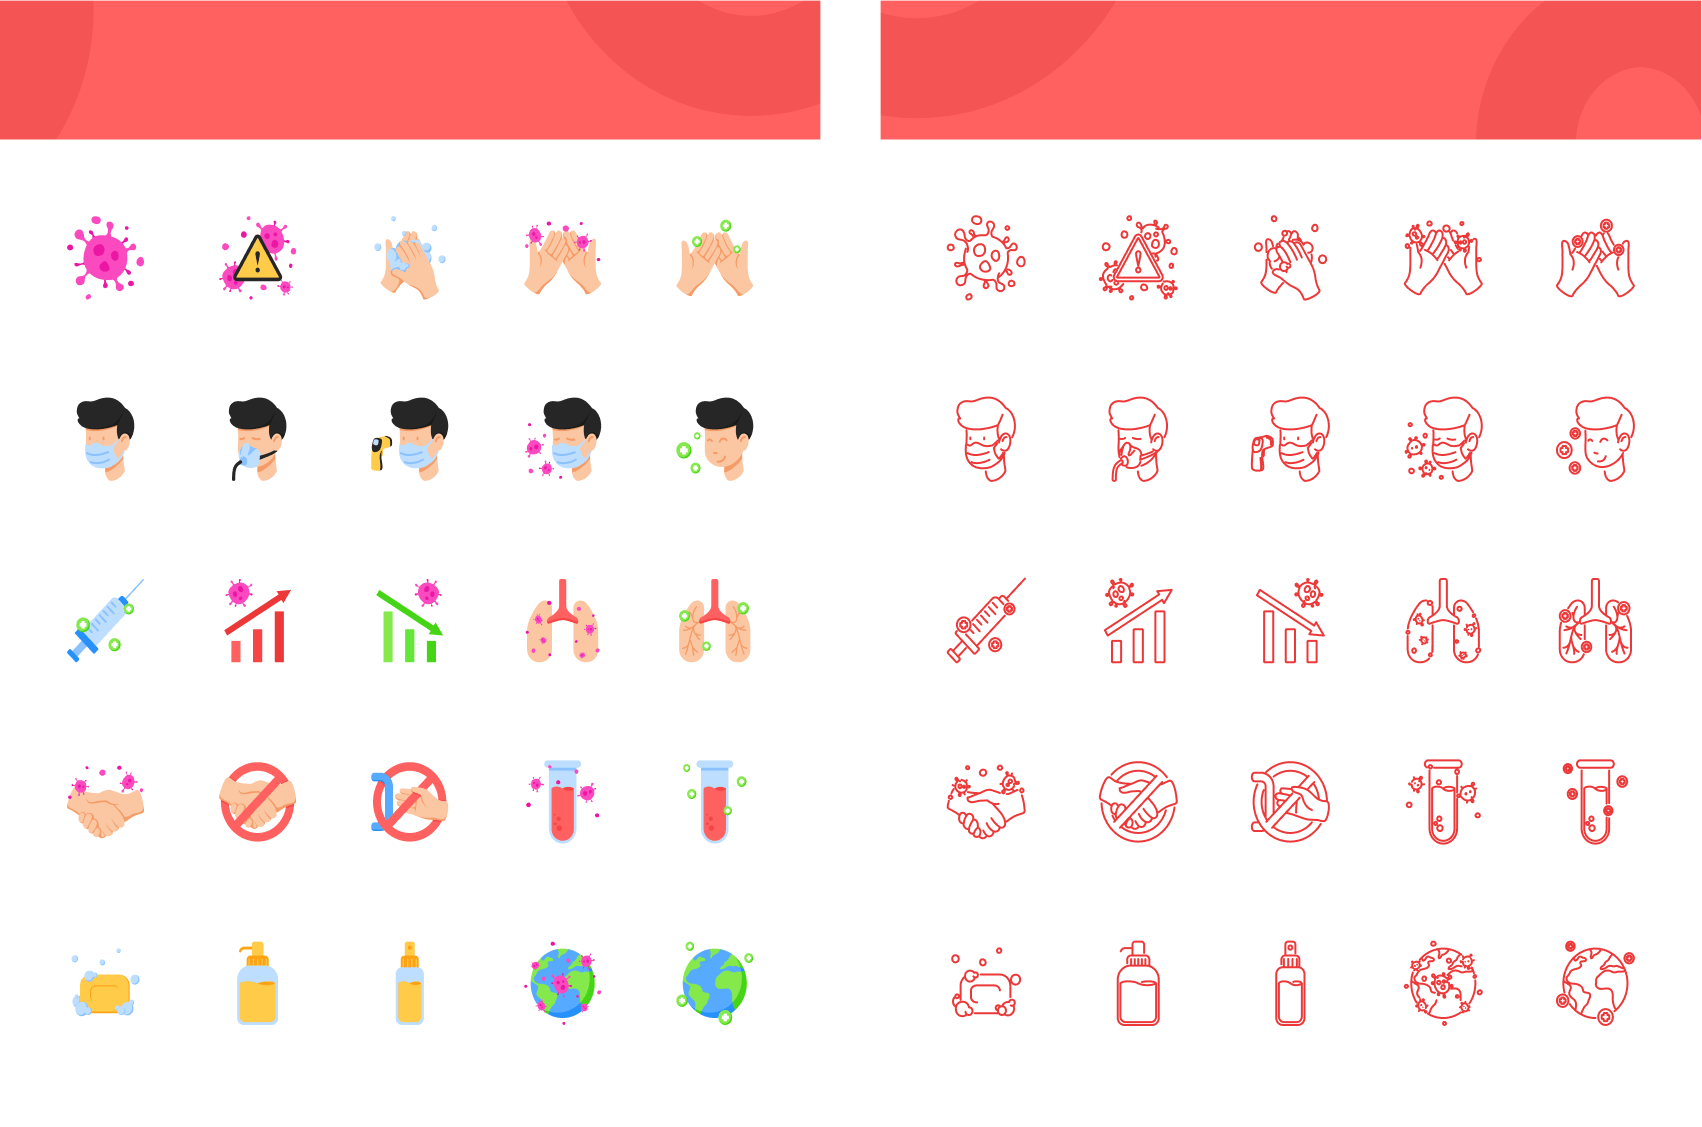 Flat and line art icons in the Covid-19 Icon Pack